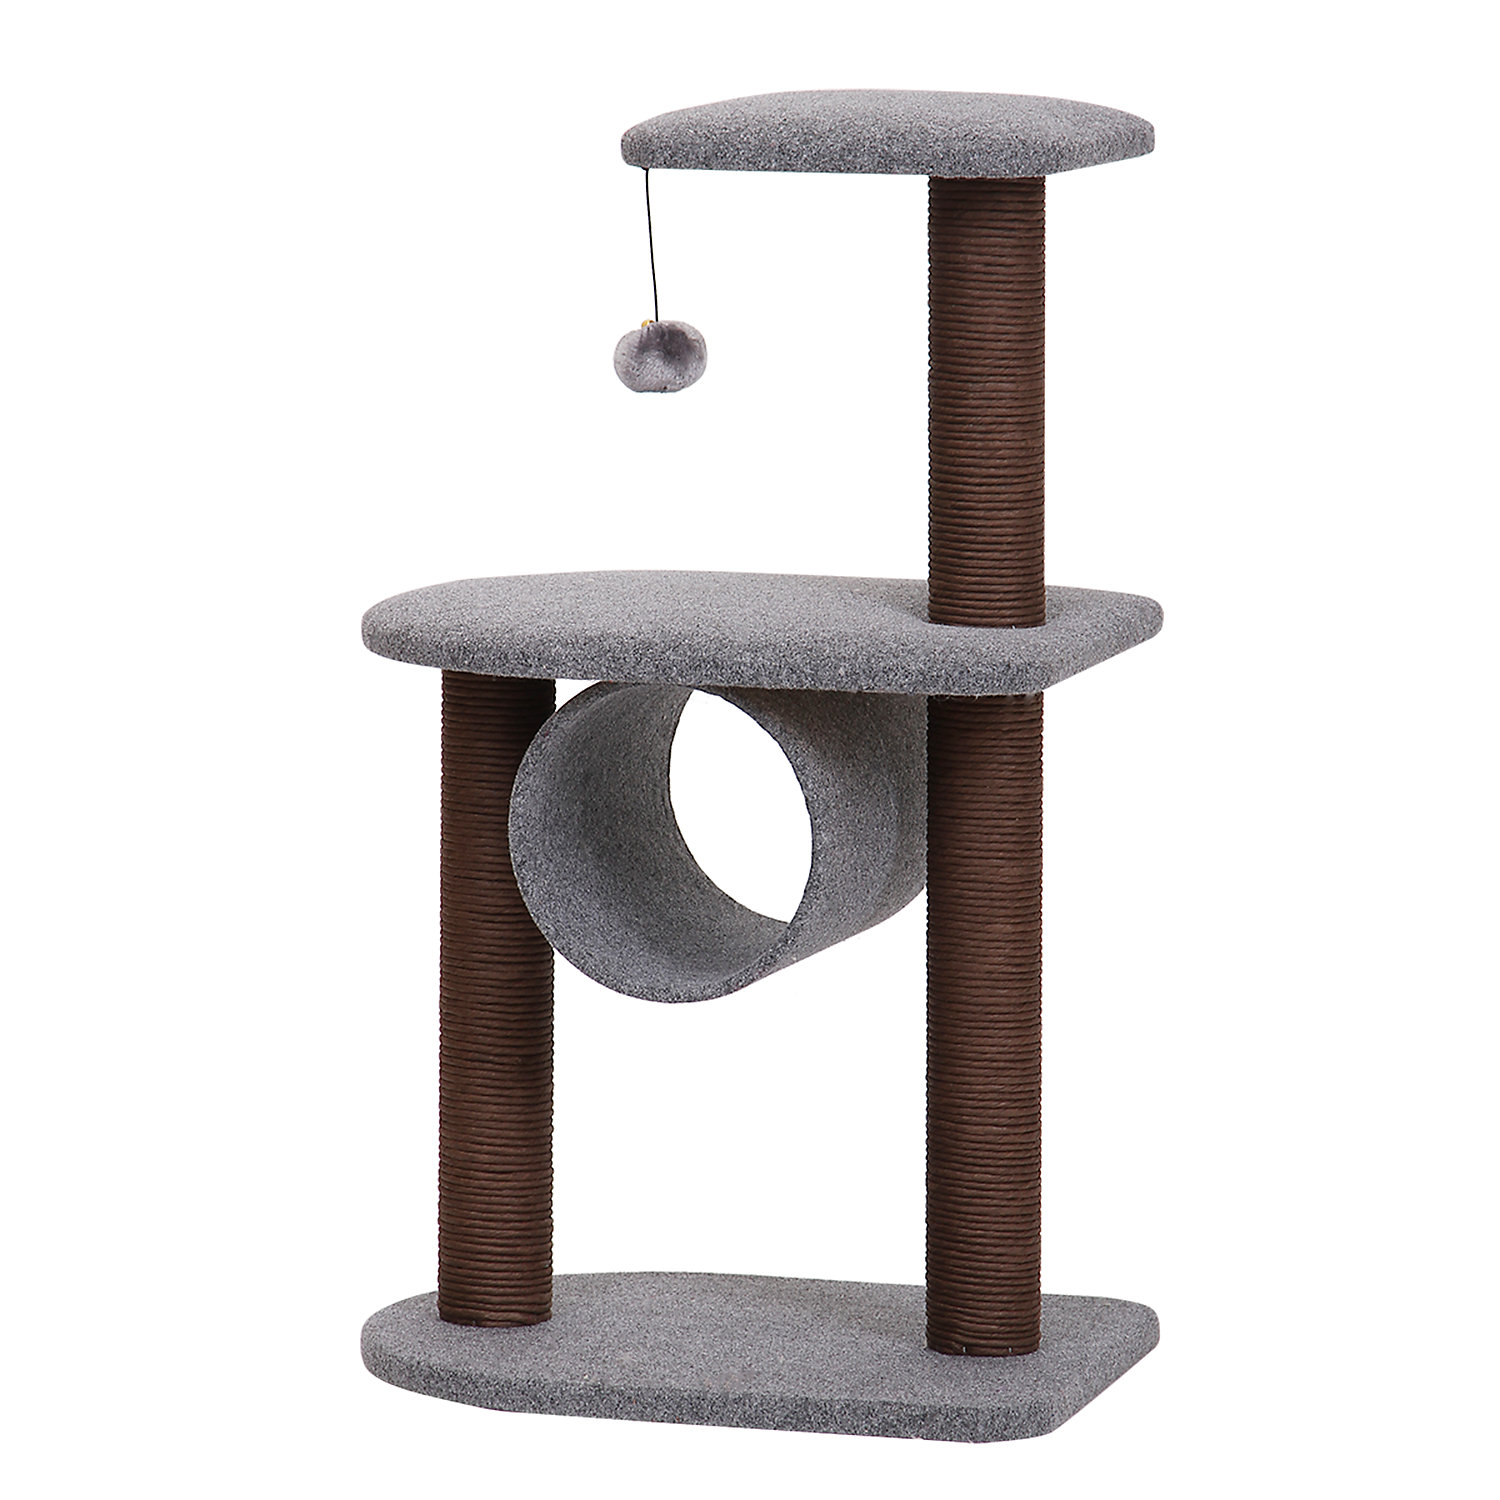 PetPals Grey and Chocolate Cat Tree with Hanging Toy